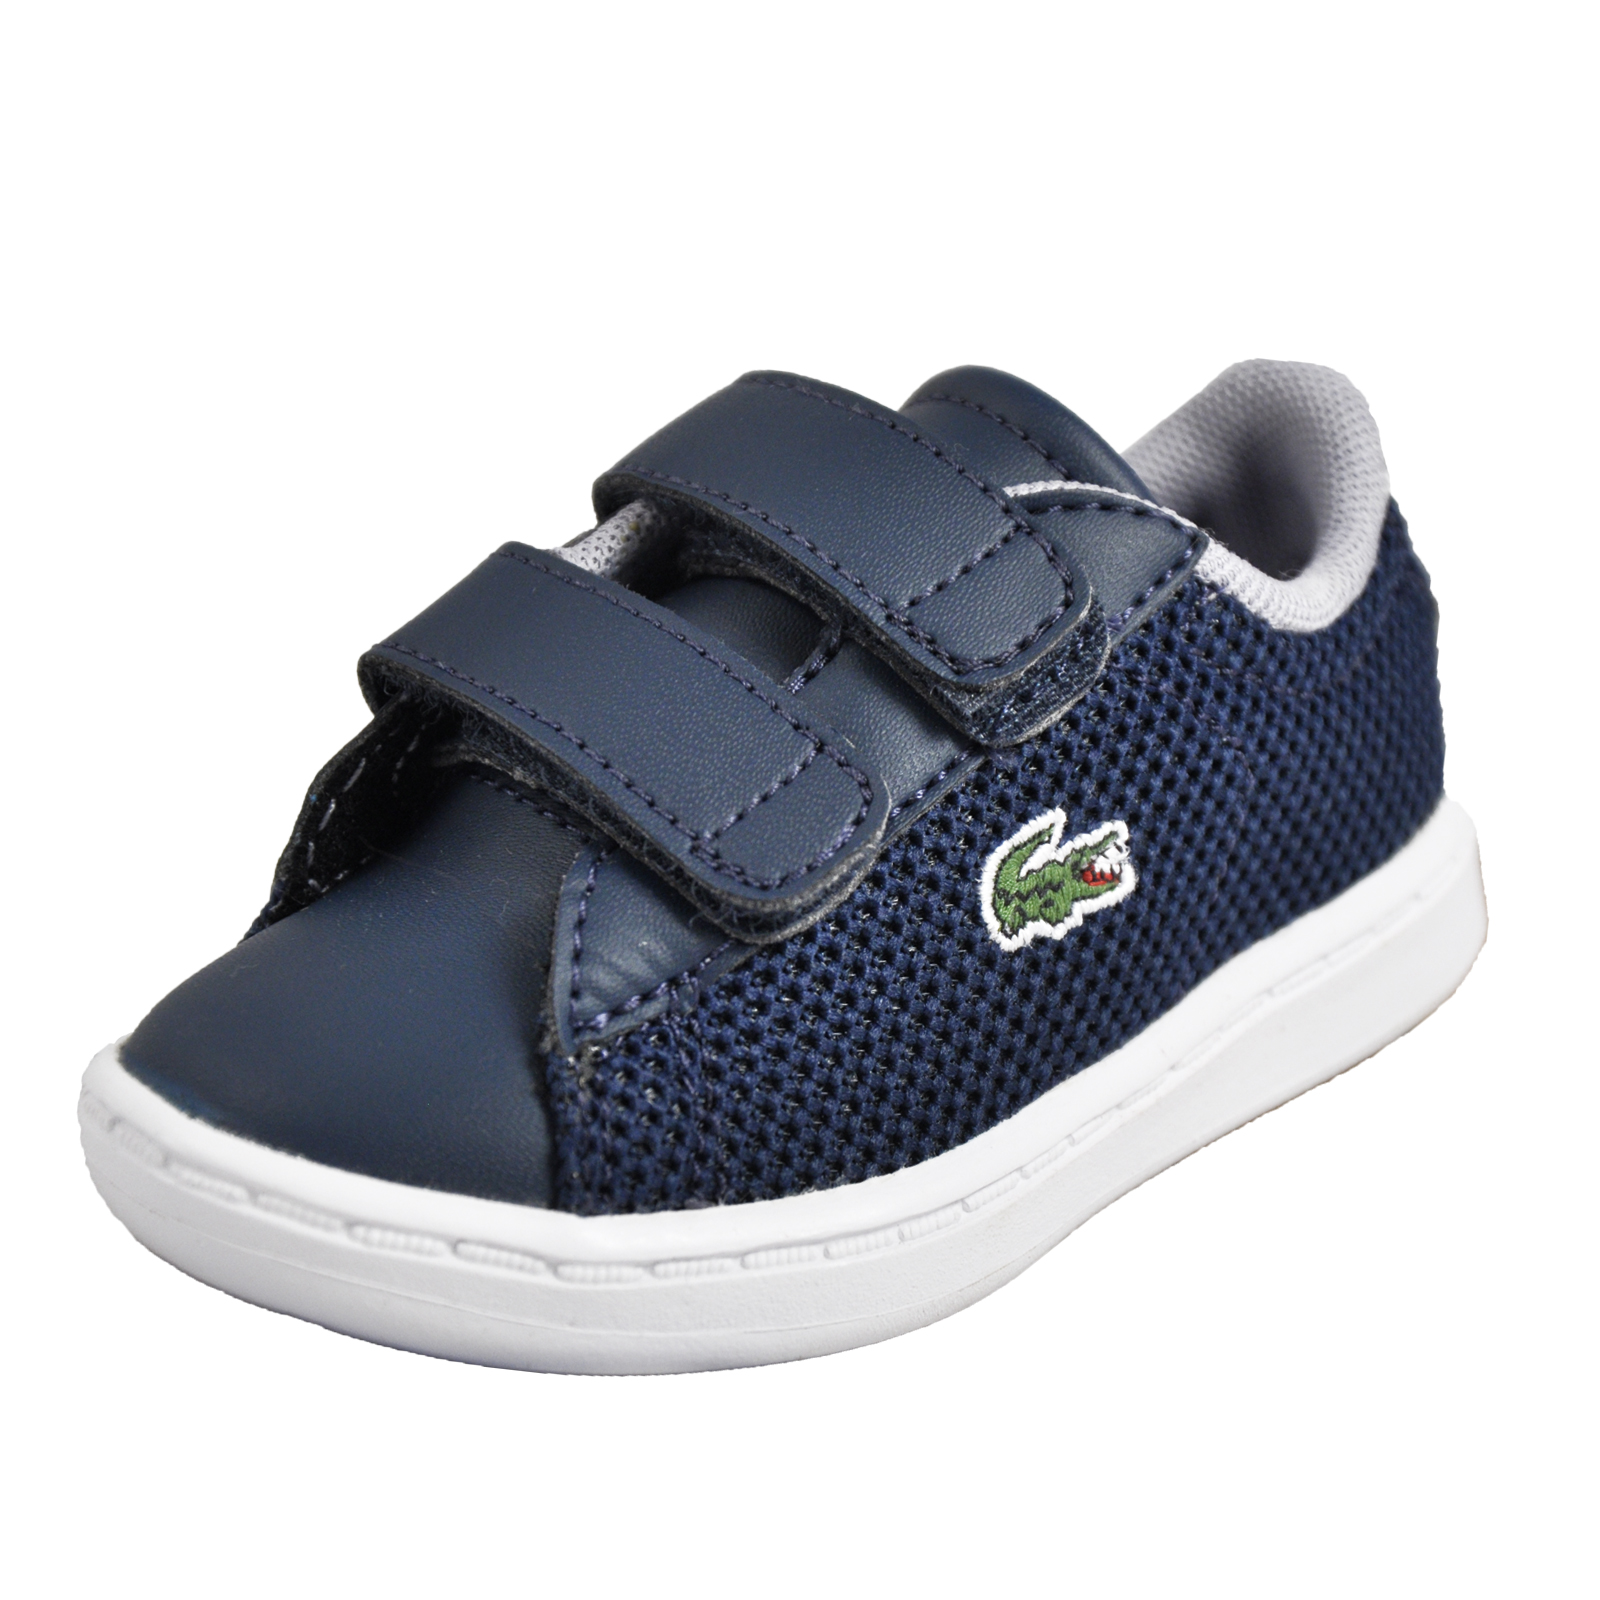 f1864b0fc Details about Lacoste Carnaby Evo 117 Infants Toddlers Classic Retro  Designer Trainers Navy